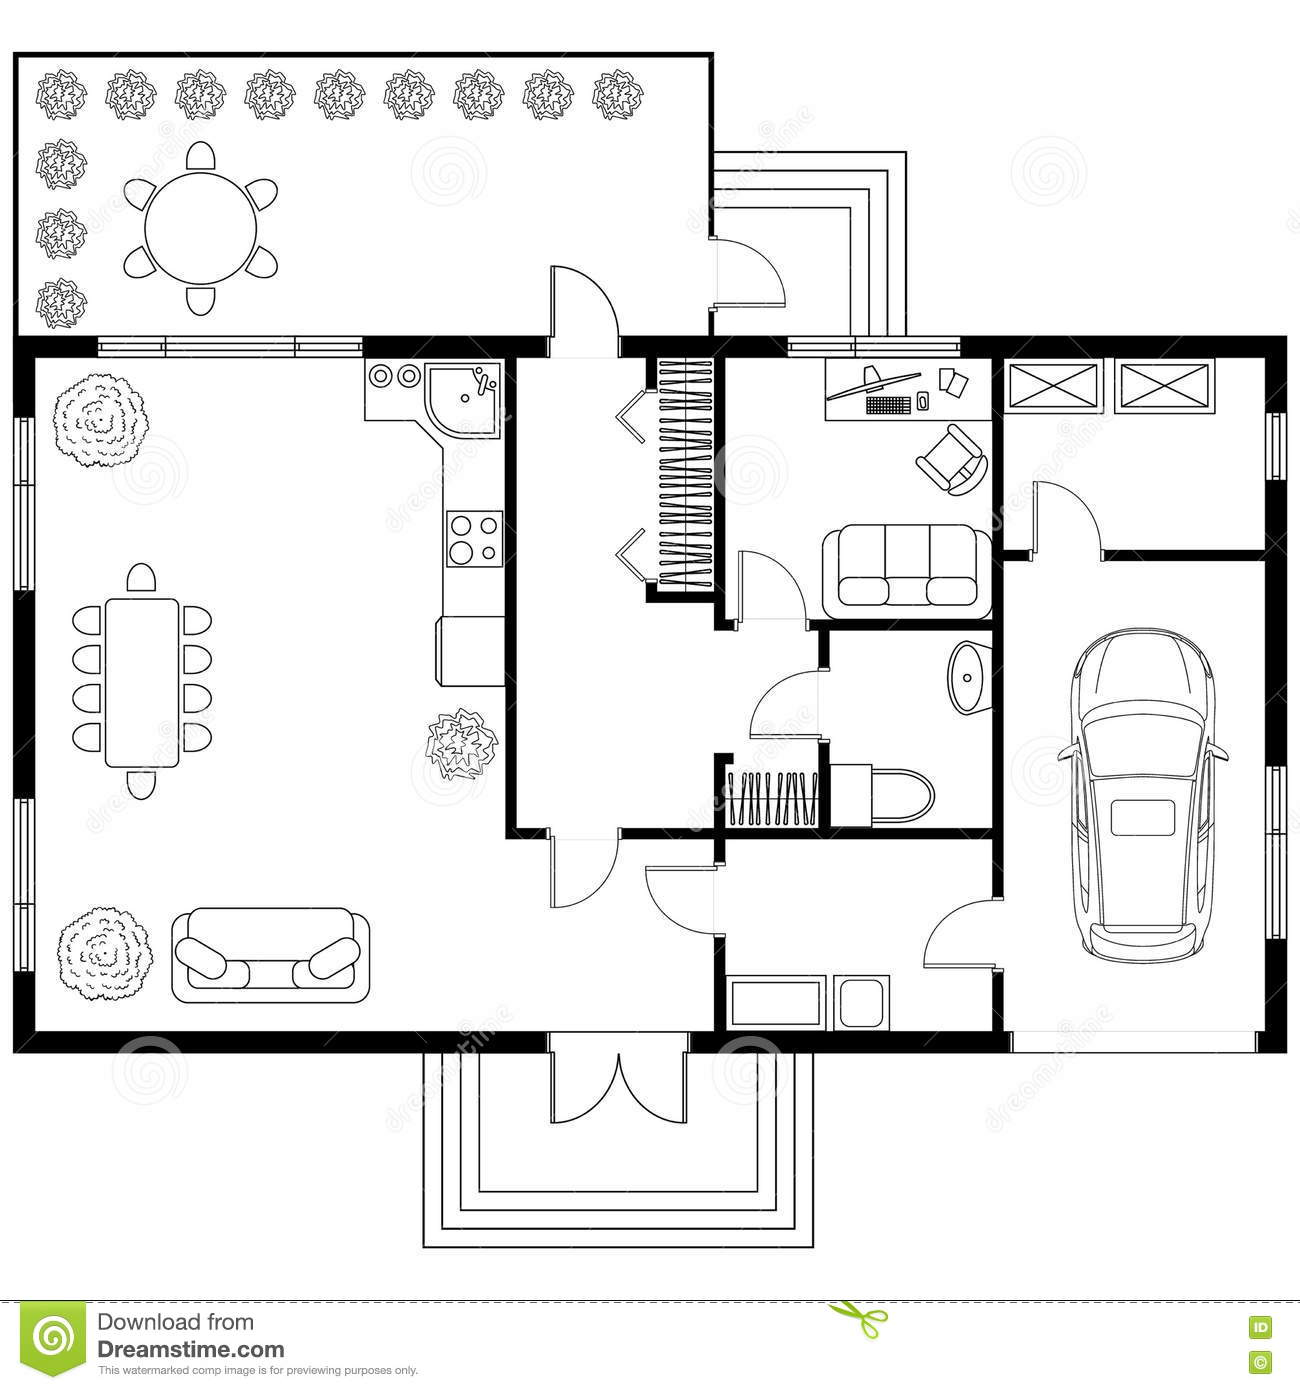 plan architectural d 39 une maison avec le garage illustration de vecteur illustration du. Black Bedroom Furniture Sets. Home Design Ideas